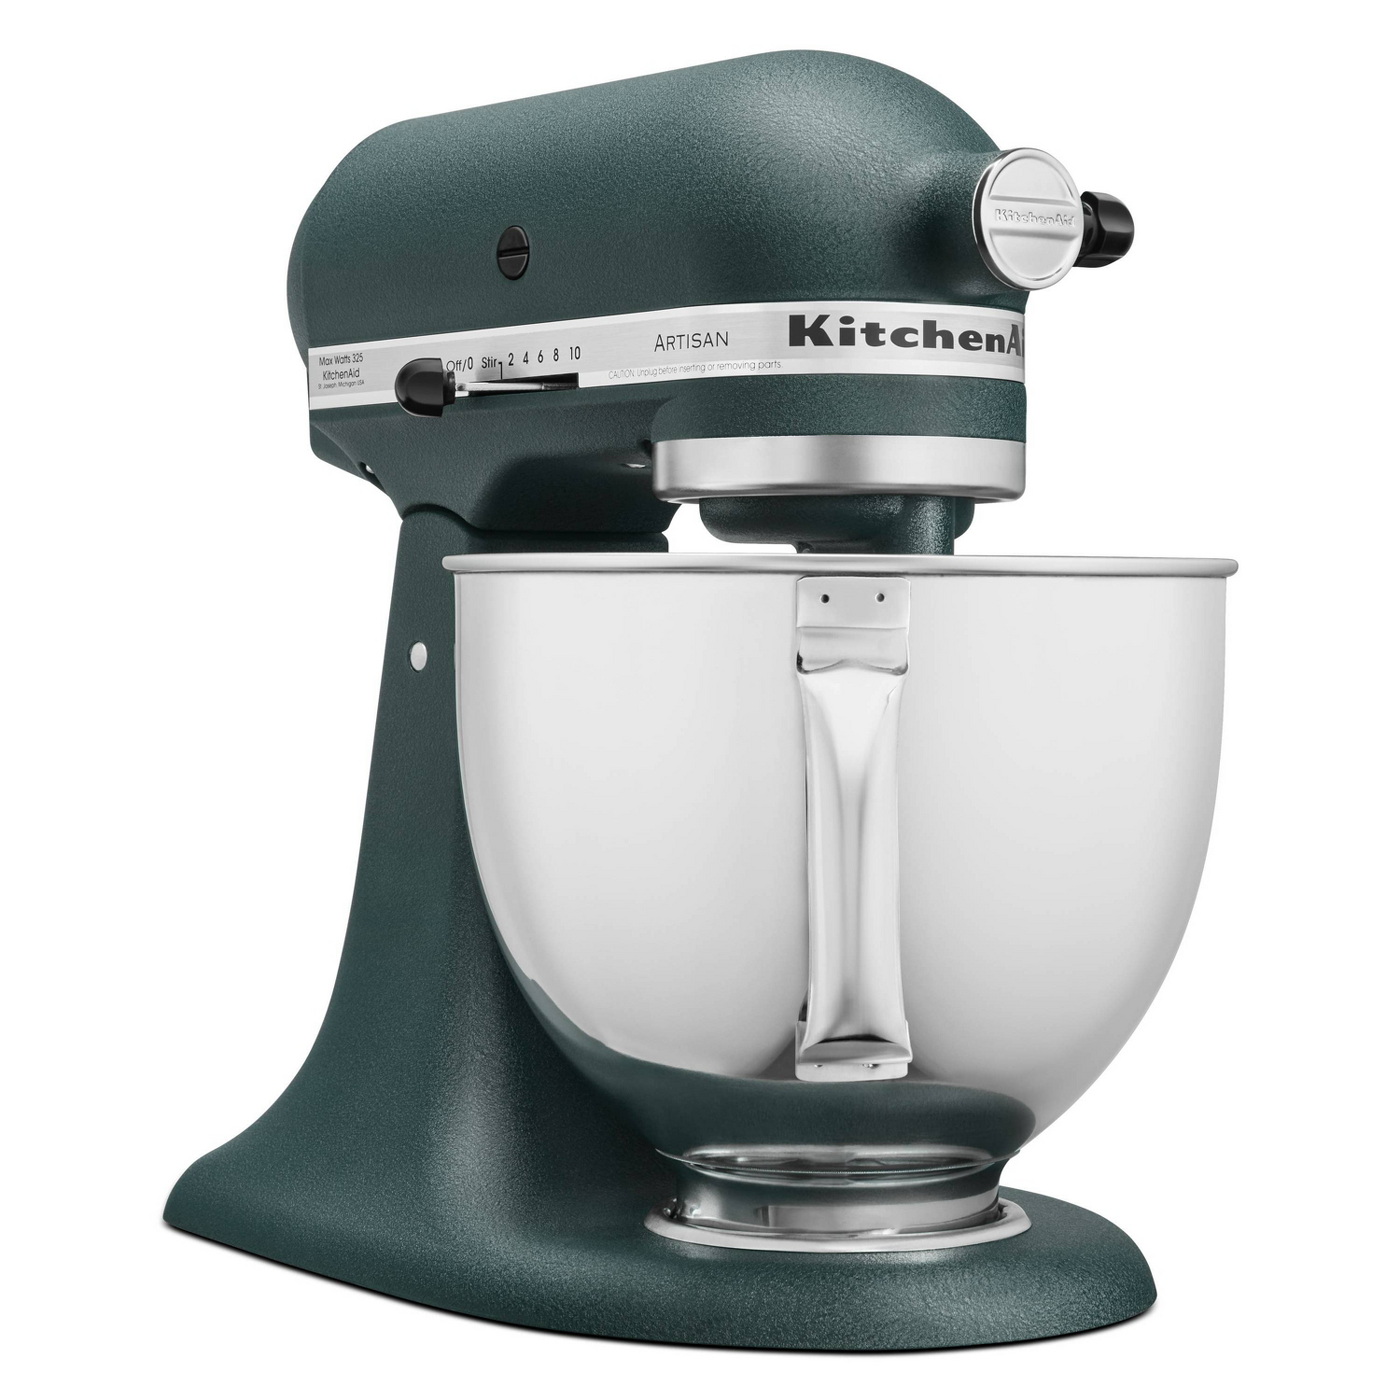 KitchenAid Forest Green stand mixer